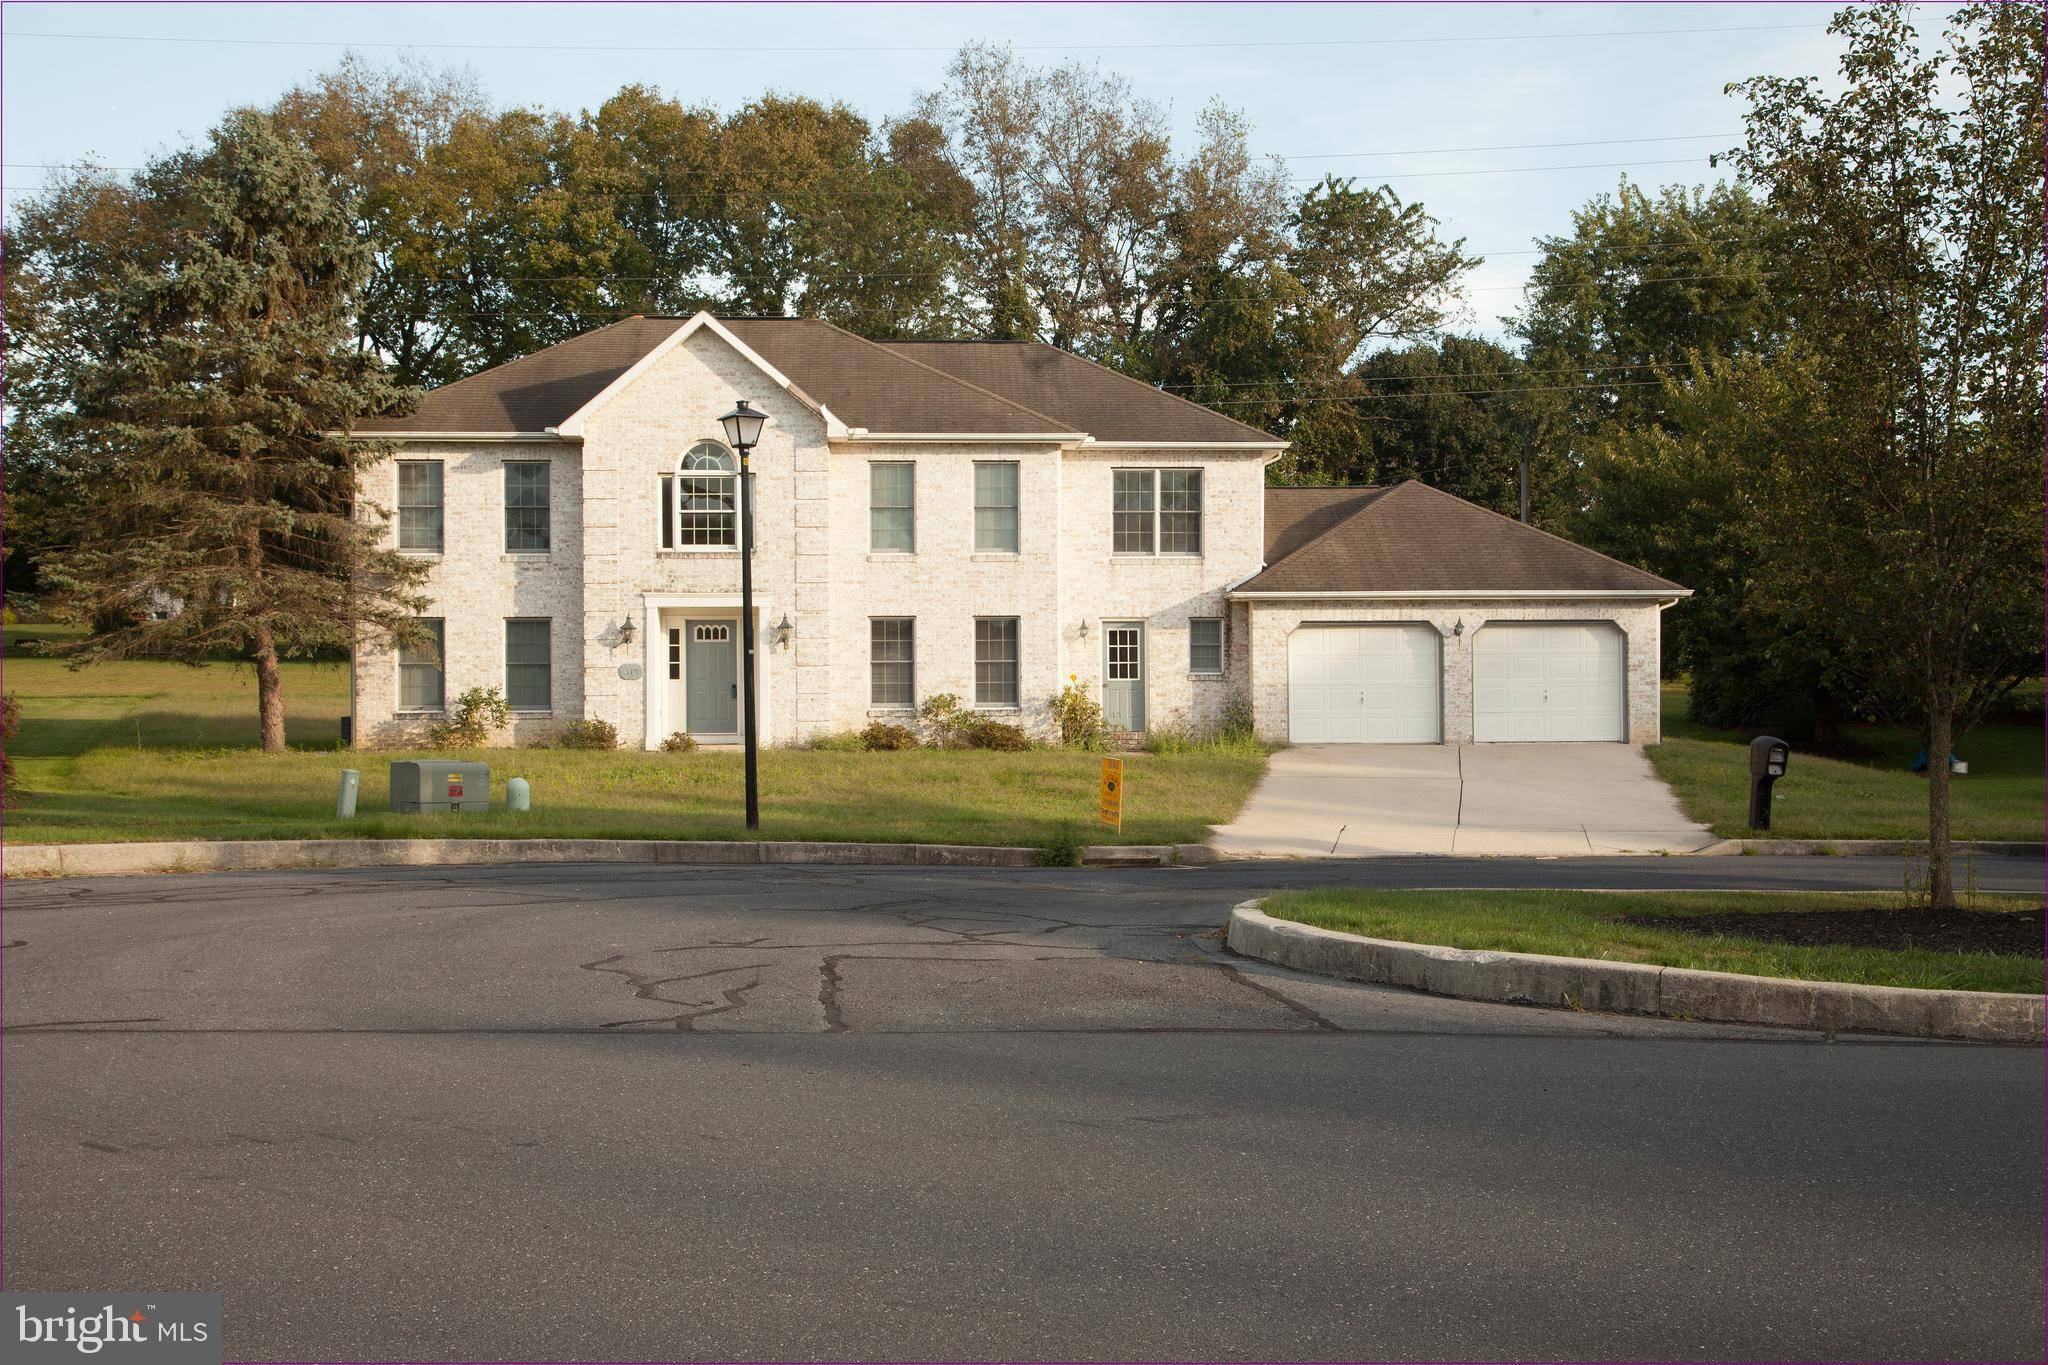 20 Best Apartments In Mechanicsburg Pa With Pictures